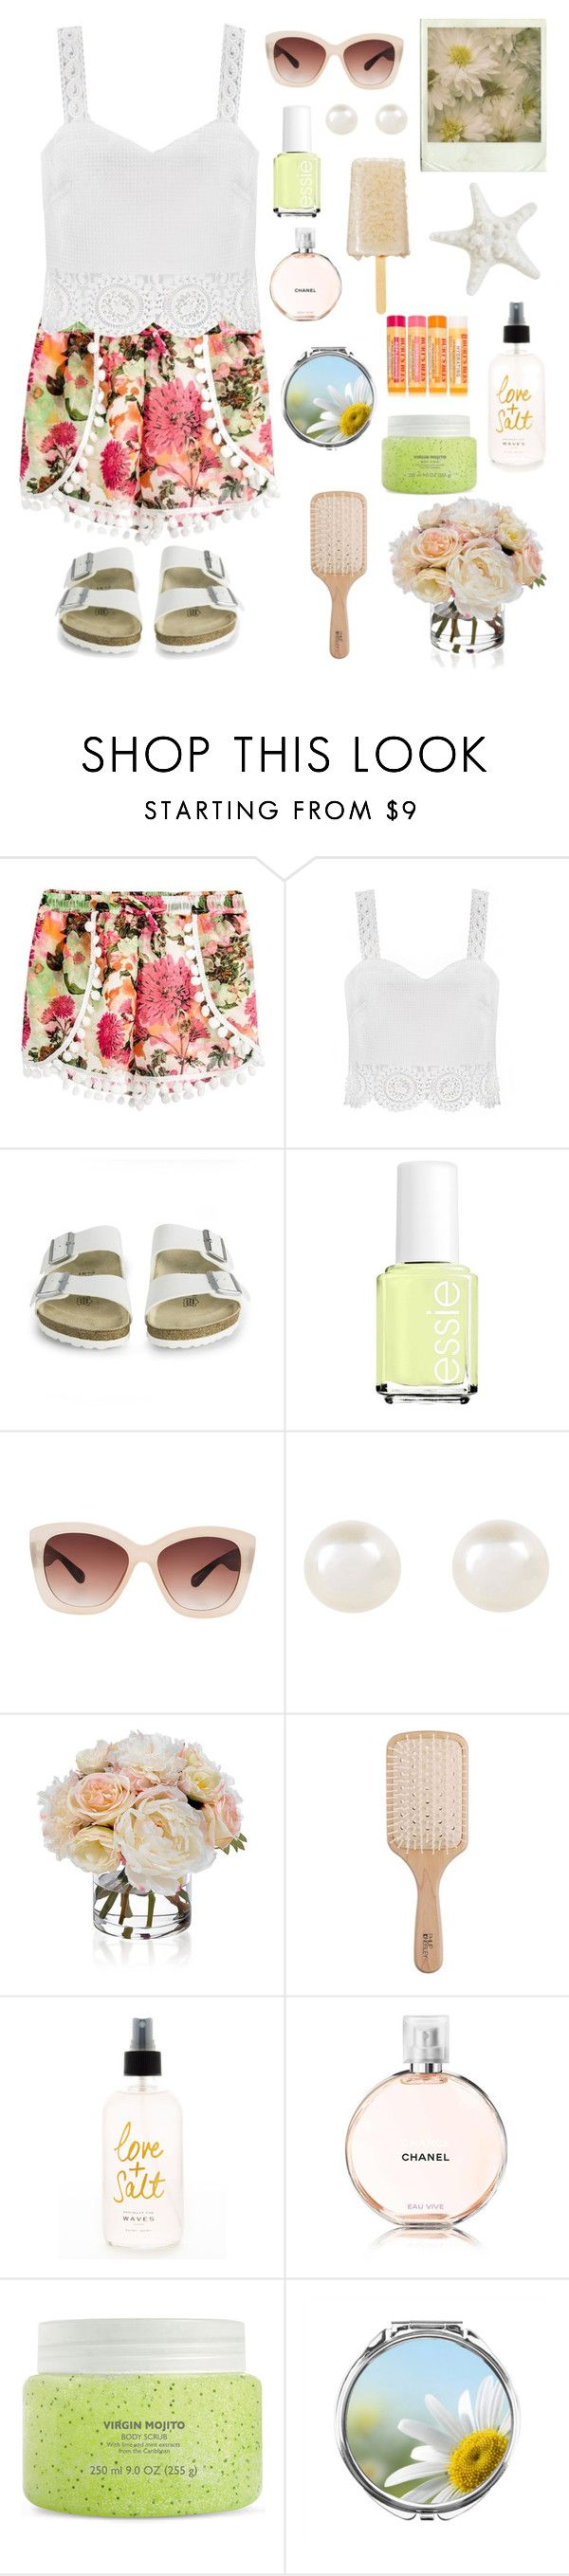 """""""Summer outfit!"""" by genesis129 ❤ liked on Polyvore featuring Quiz, Birkenstock, Essie, Eloquii, Accessorize, Diane James, Philip Kingsley, Chanel and Burt's Bees"""